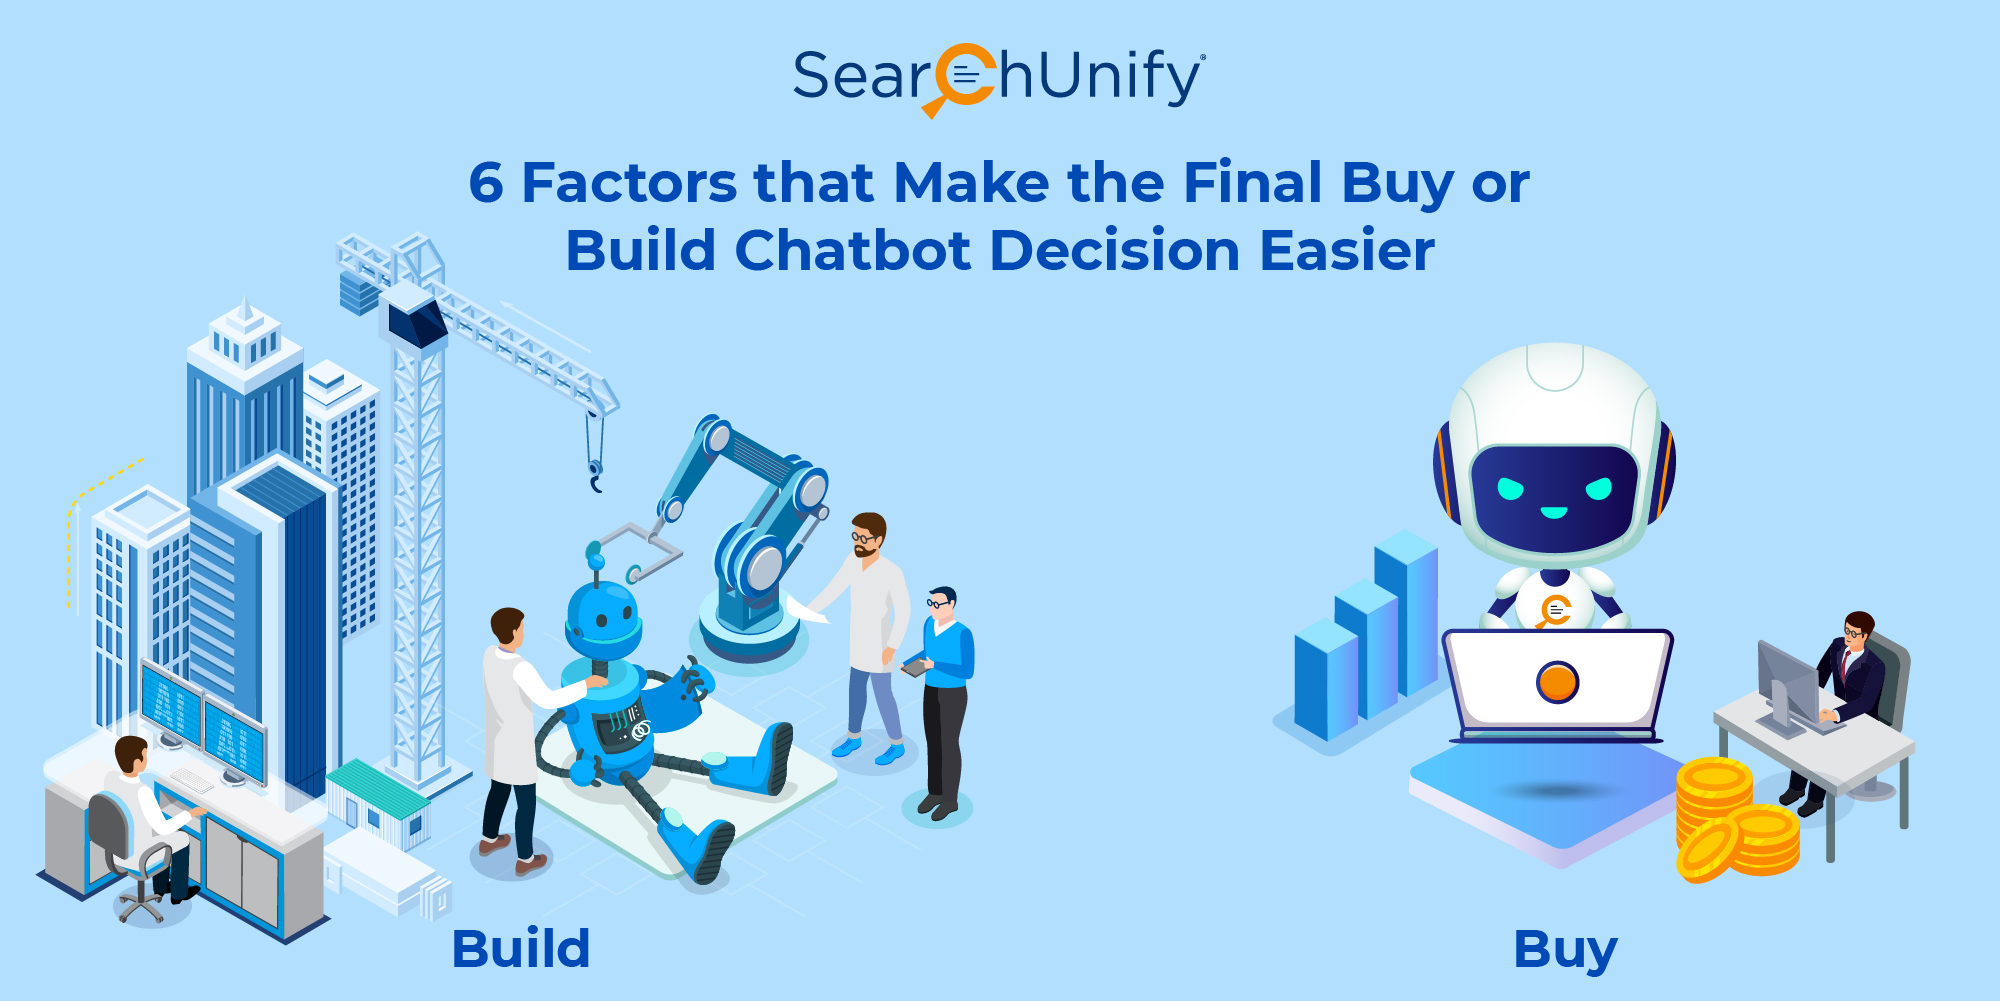 6 Factors that Make the Final Buy or Build Chatbot Decision Easier